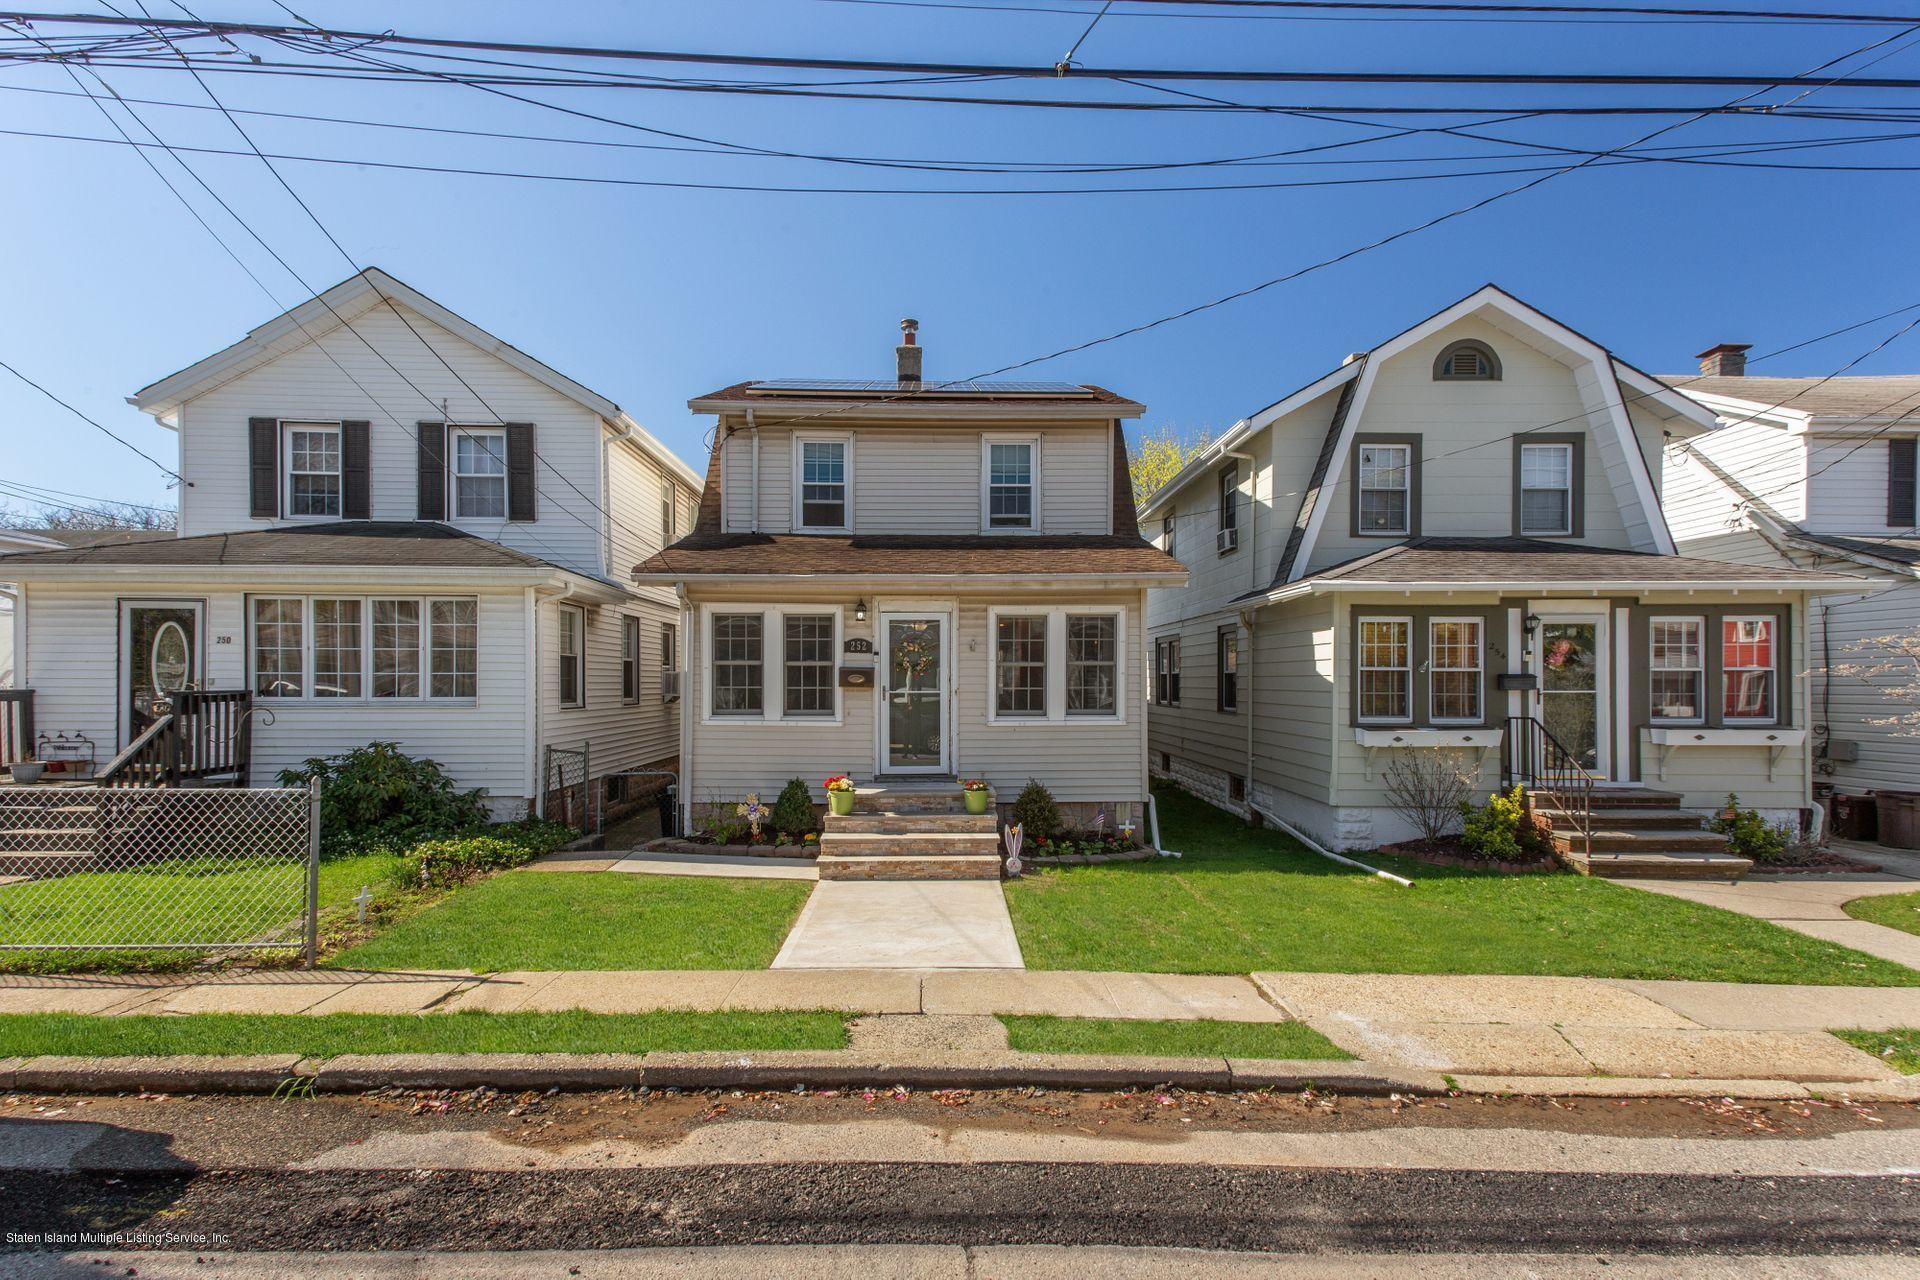 Single Family - Detached 252 Waters Avenue  Staten Island, NY 10314, MLS-1128050-25